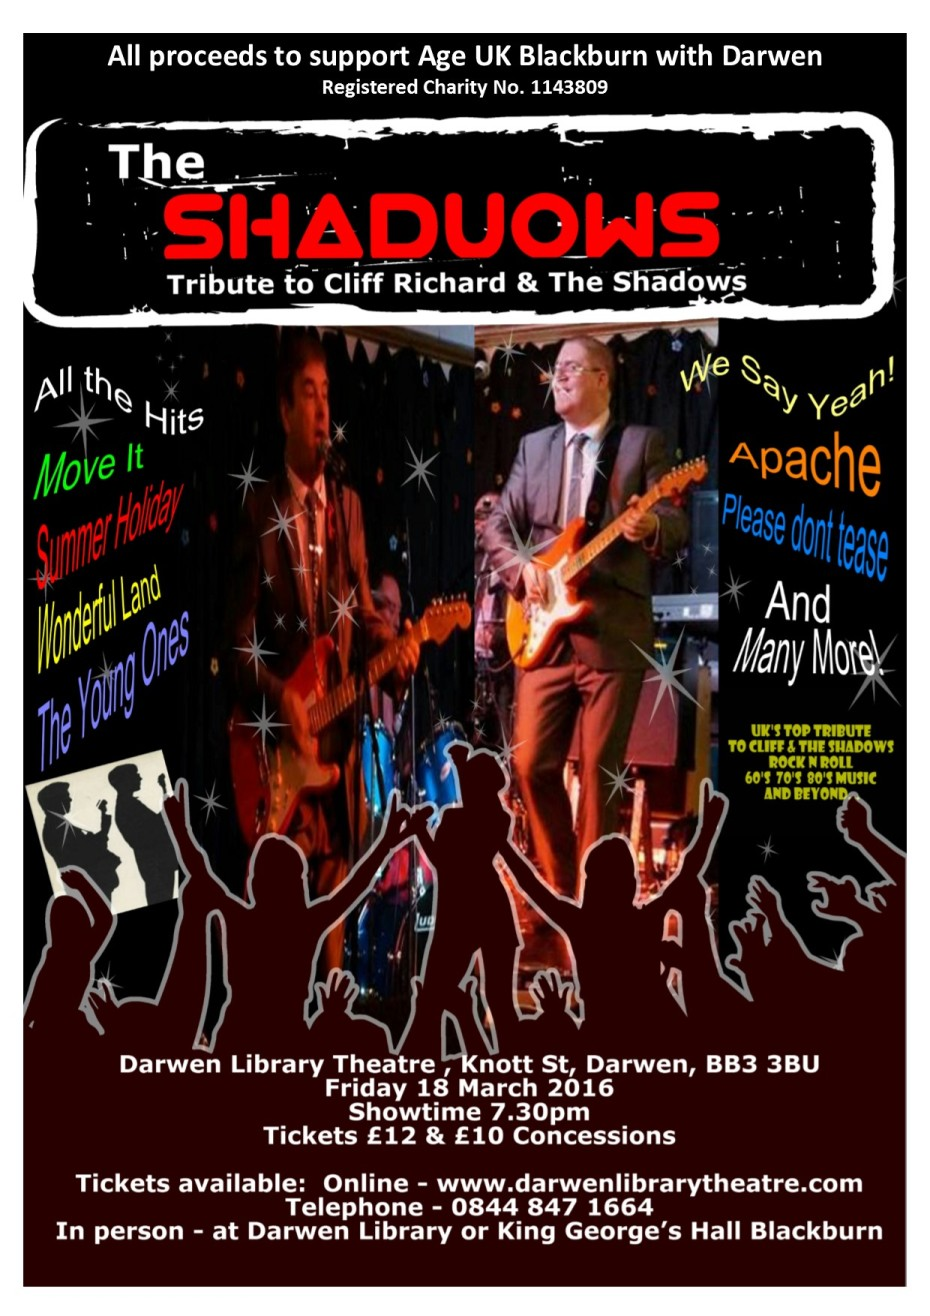 Shaduows - Shadows and Cliff Richard tribute concert